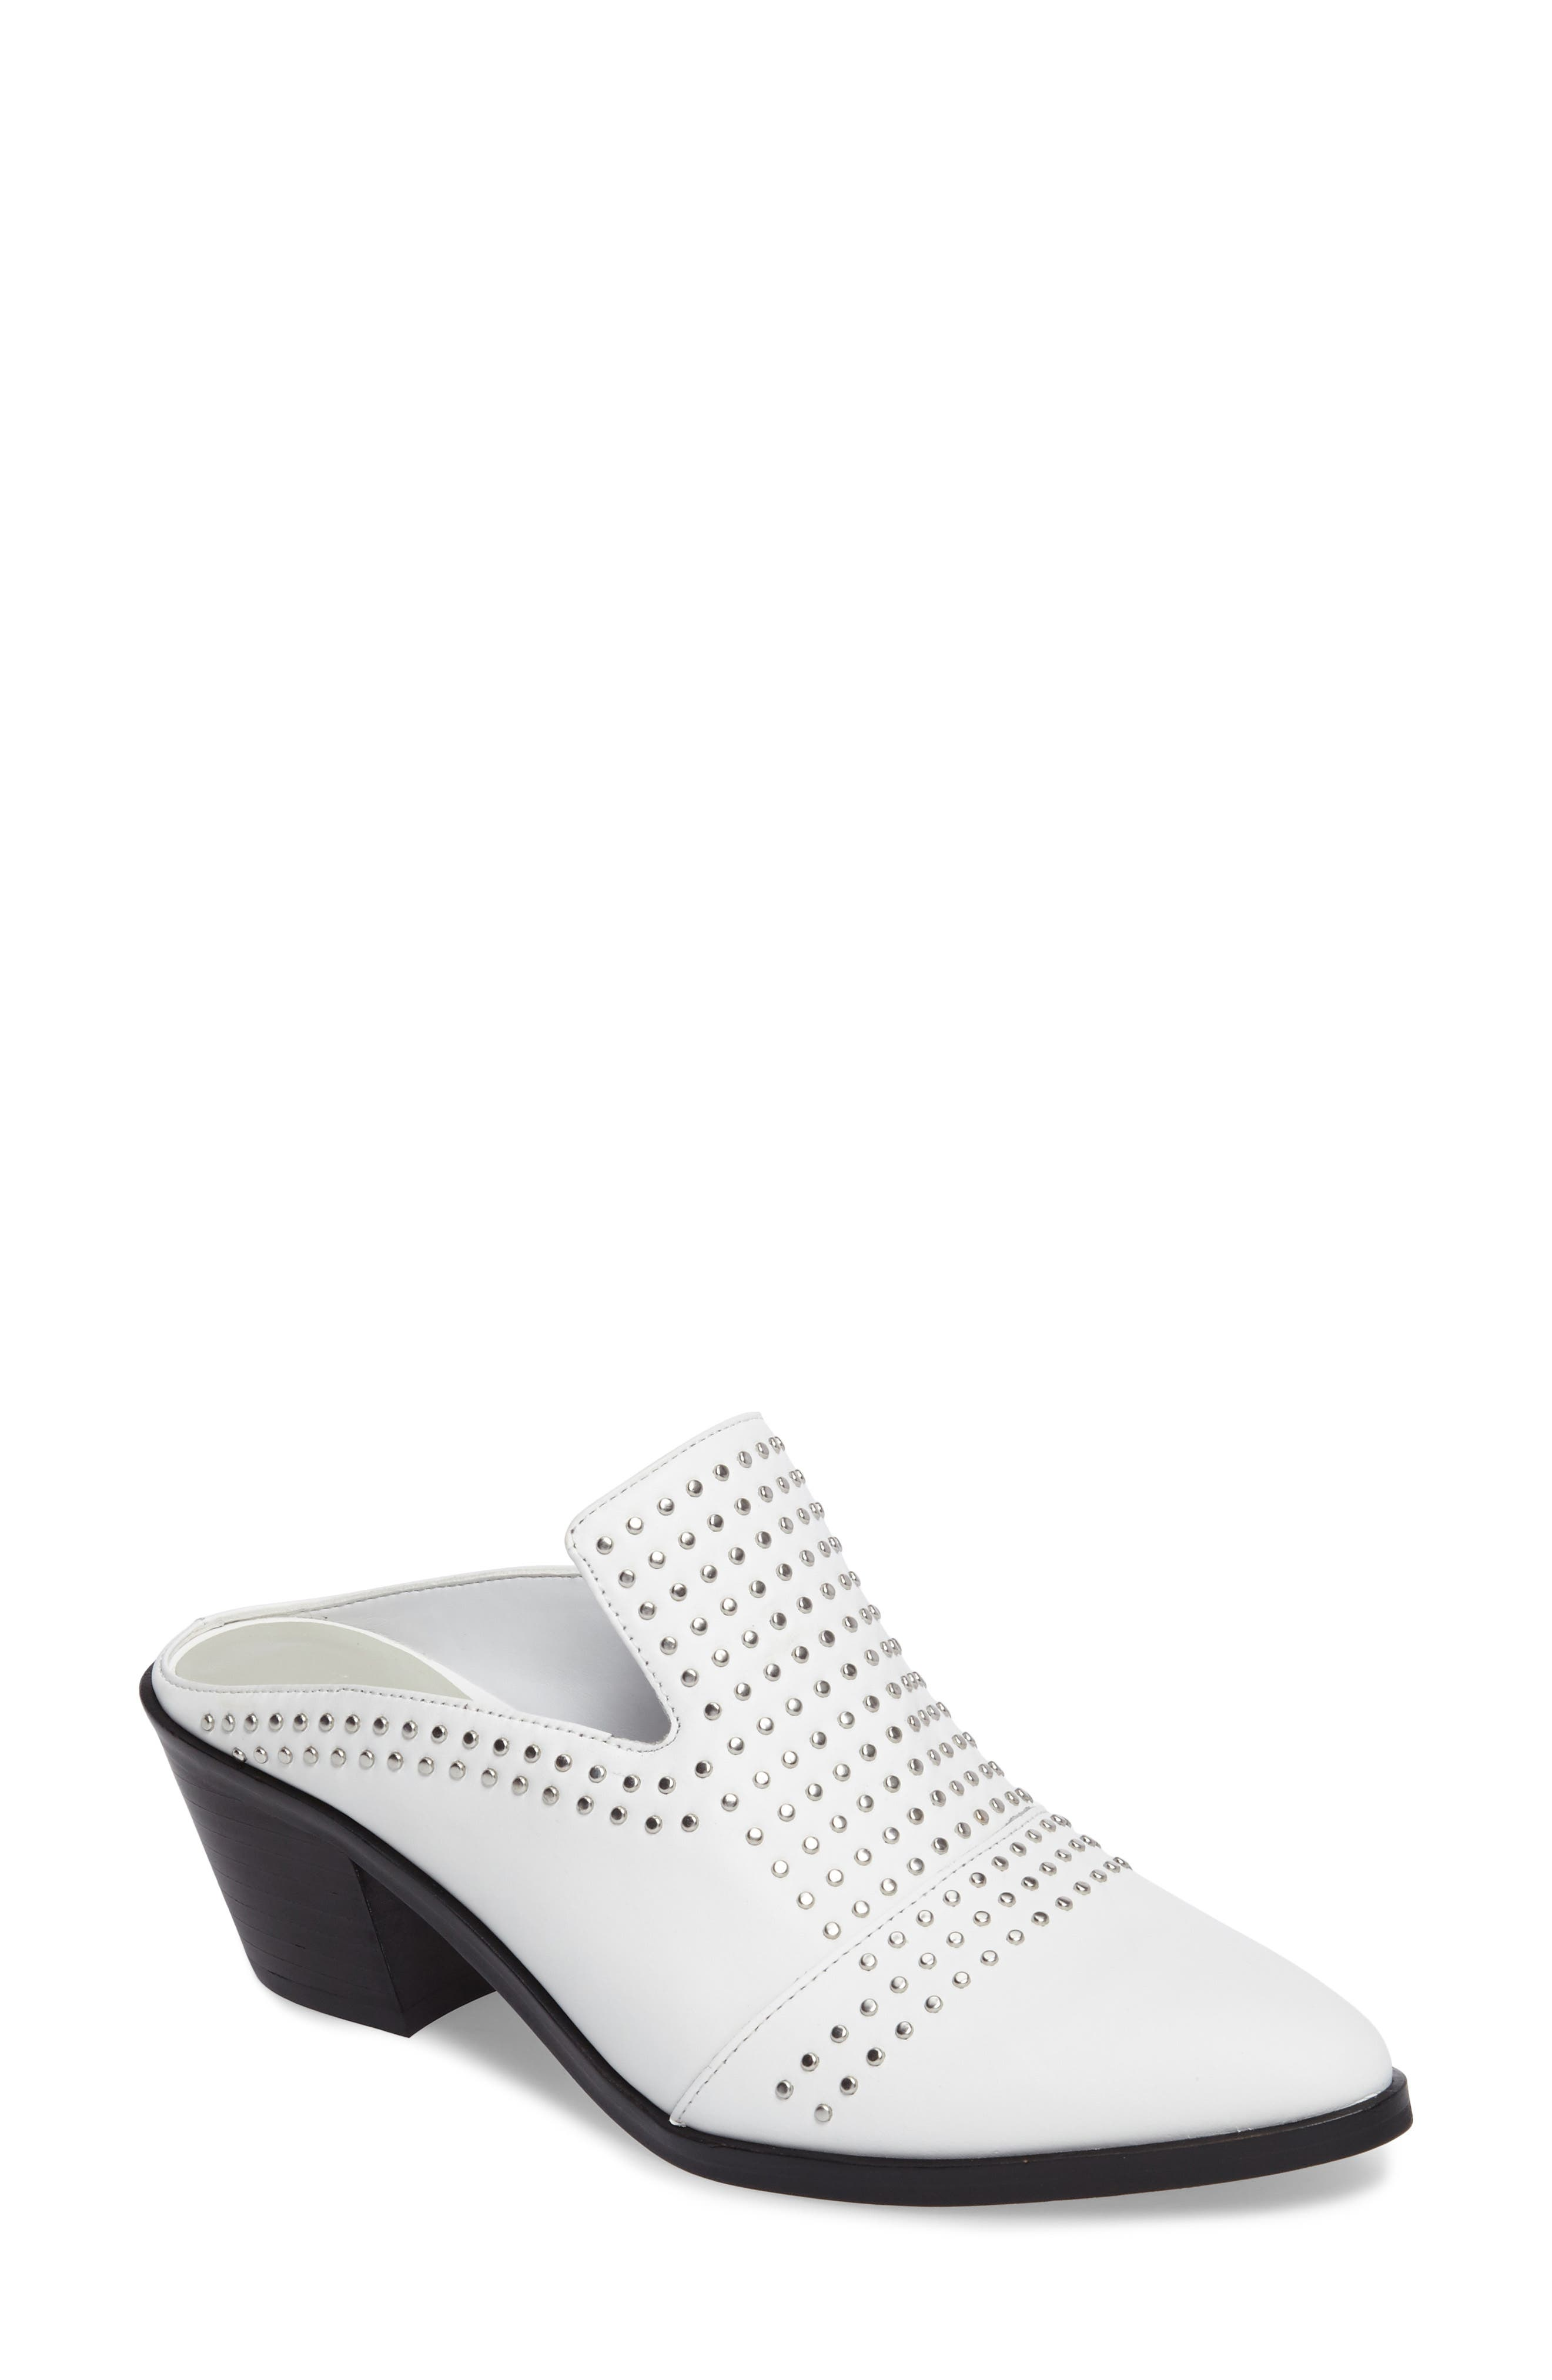 Alternate Image 1 Selected - 1.STATE Lon Studded Loafer Mule (Women)